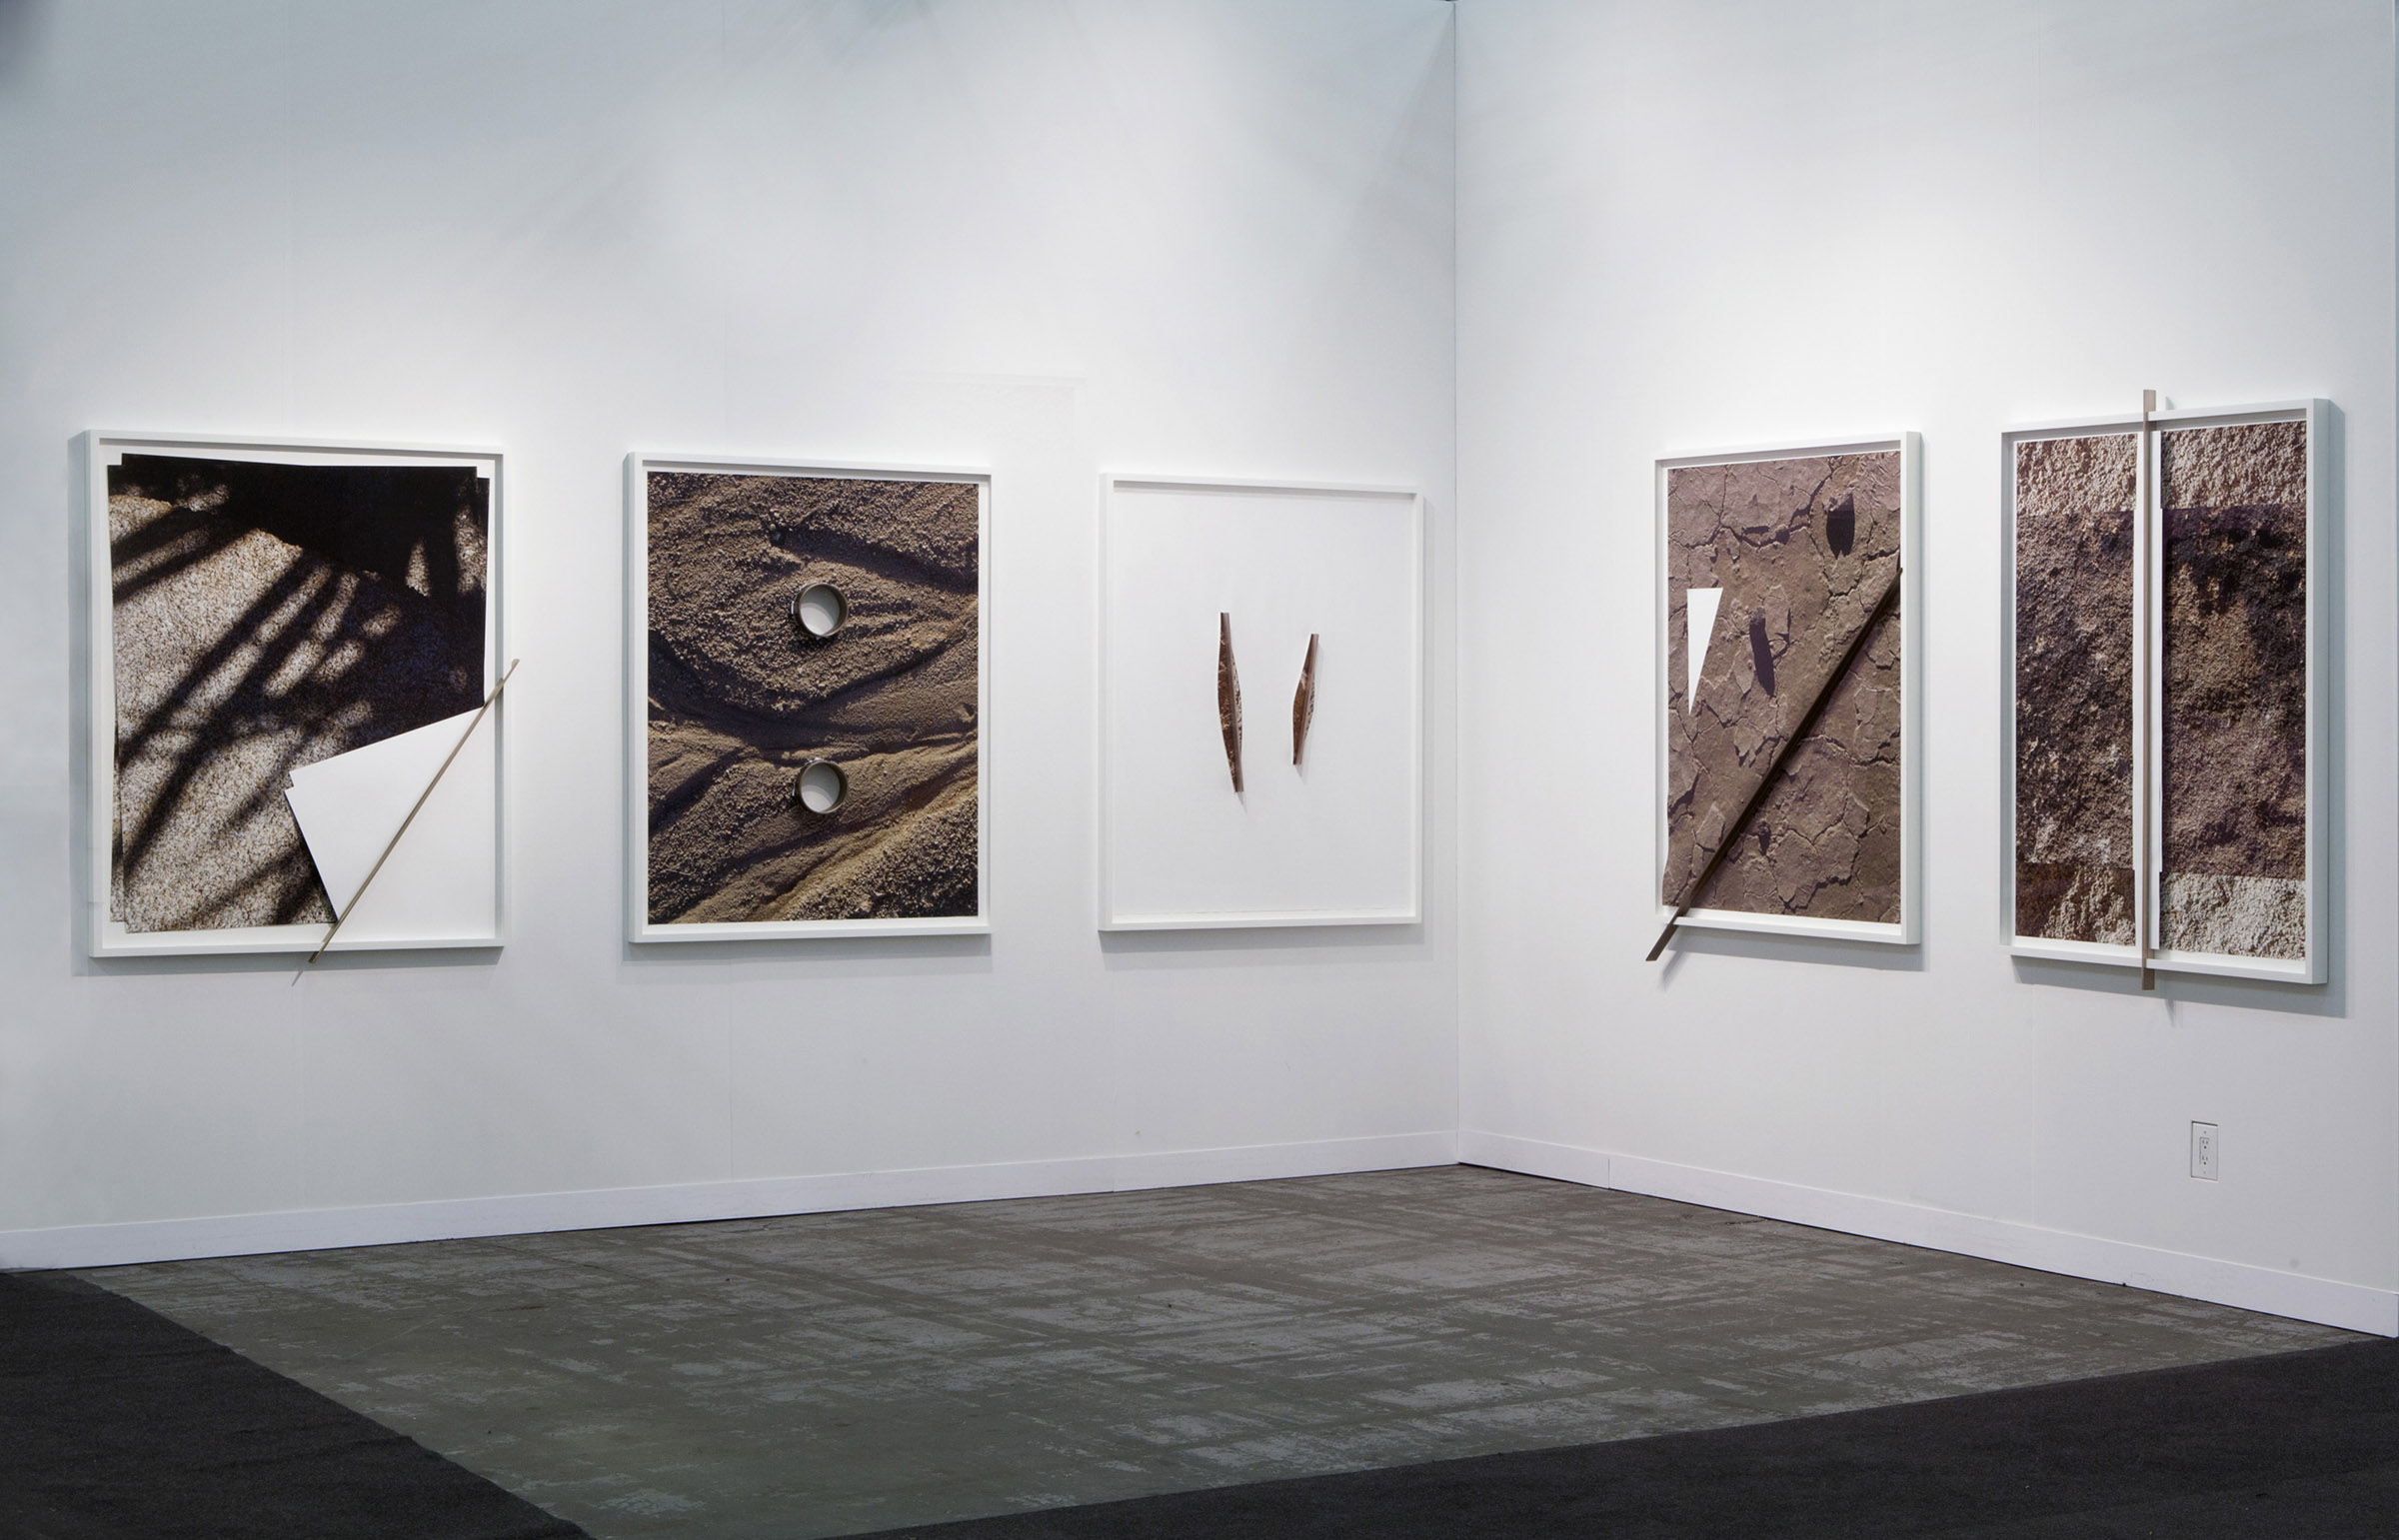 "Installation view at Armory Show 2016 Joshua Tree Bronze Push series, 2016 Archival inkjet prints, bronze, museum plexiglas, wood frame Each approx 60"" x 45"" x 2 1/8"" 